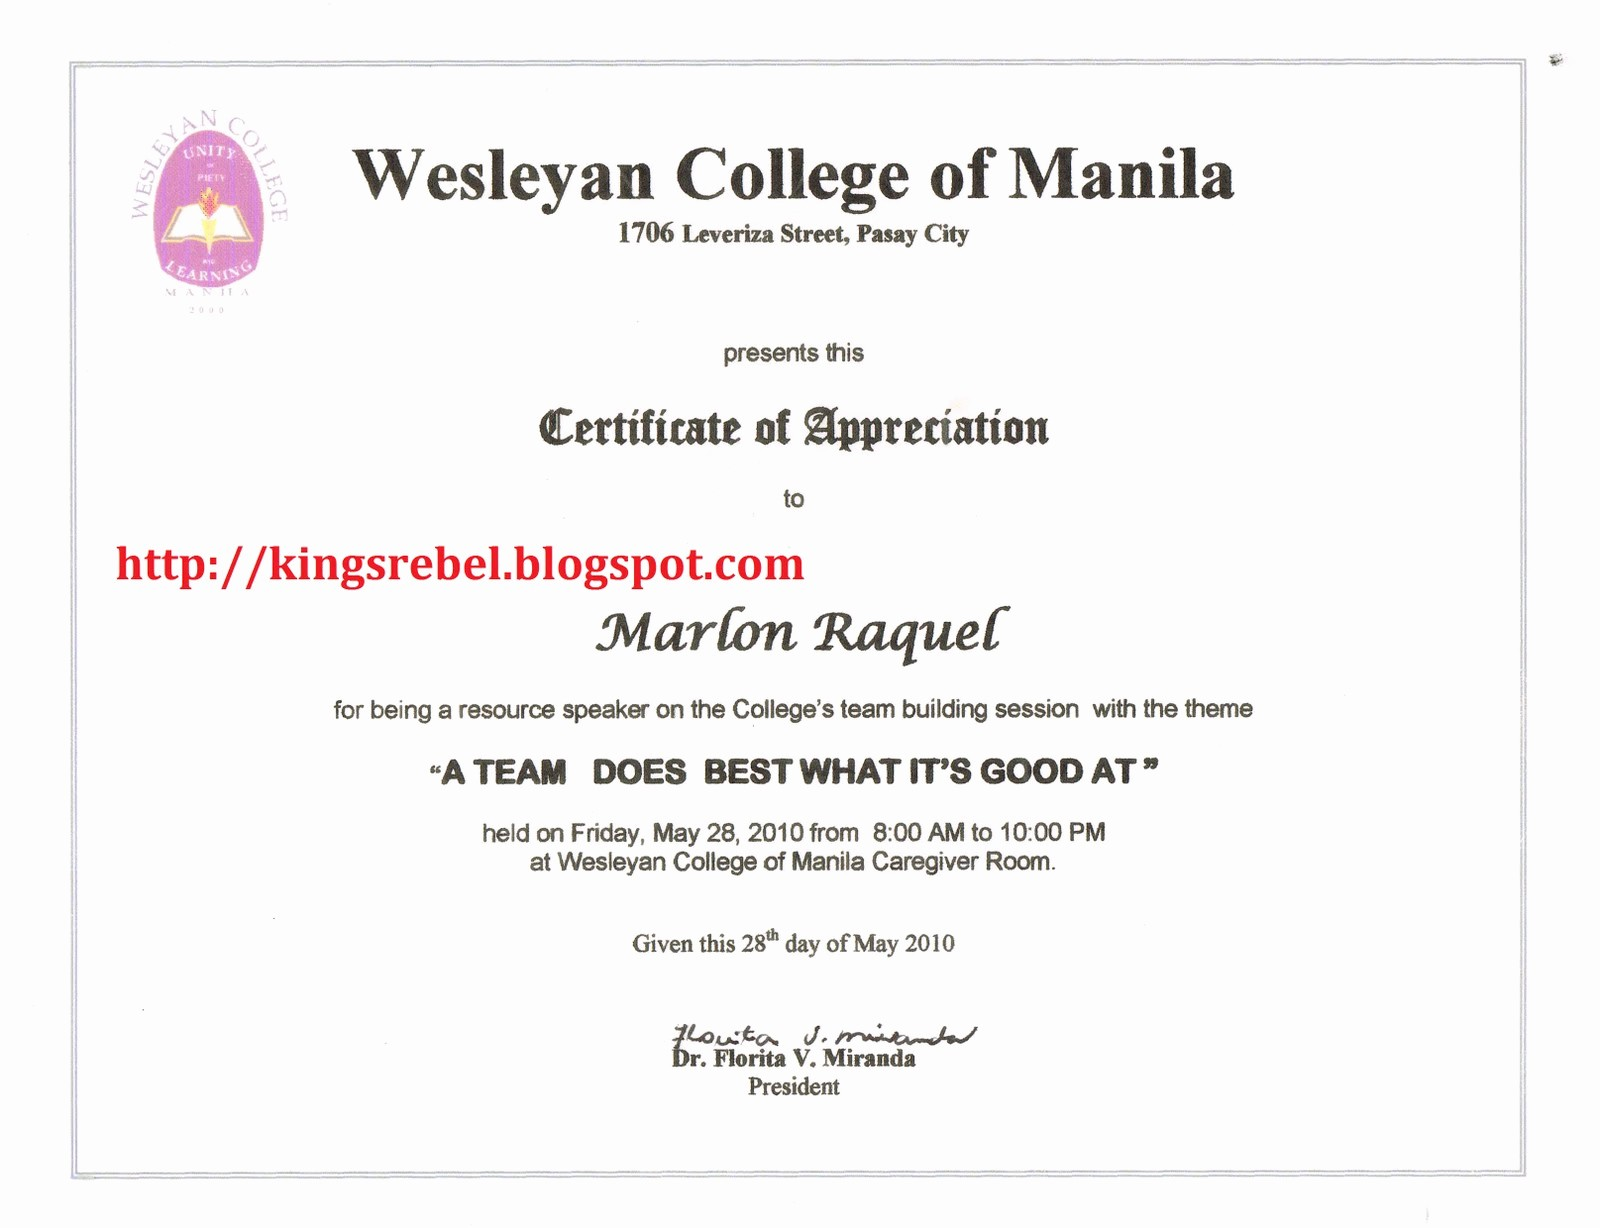 Example Of Certificate Of Appreciation Beautiful Tidbits and bytes 01 01 2011 02 01 2011